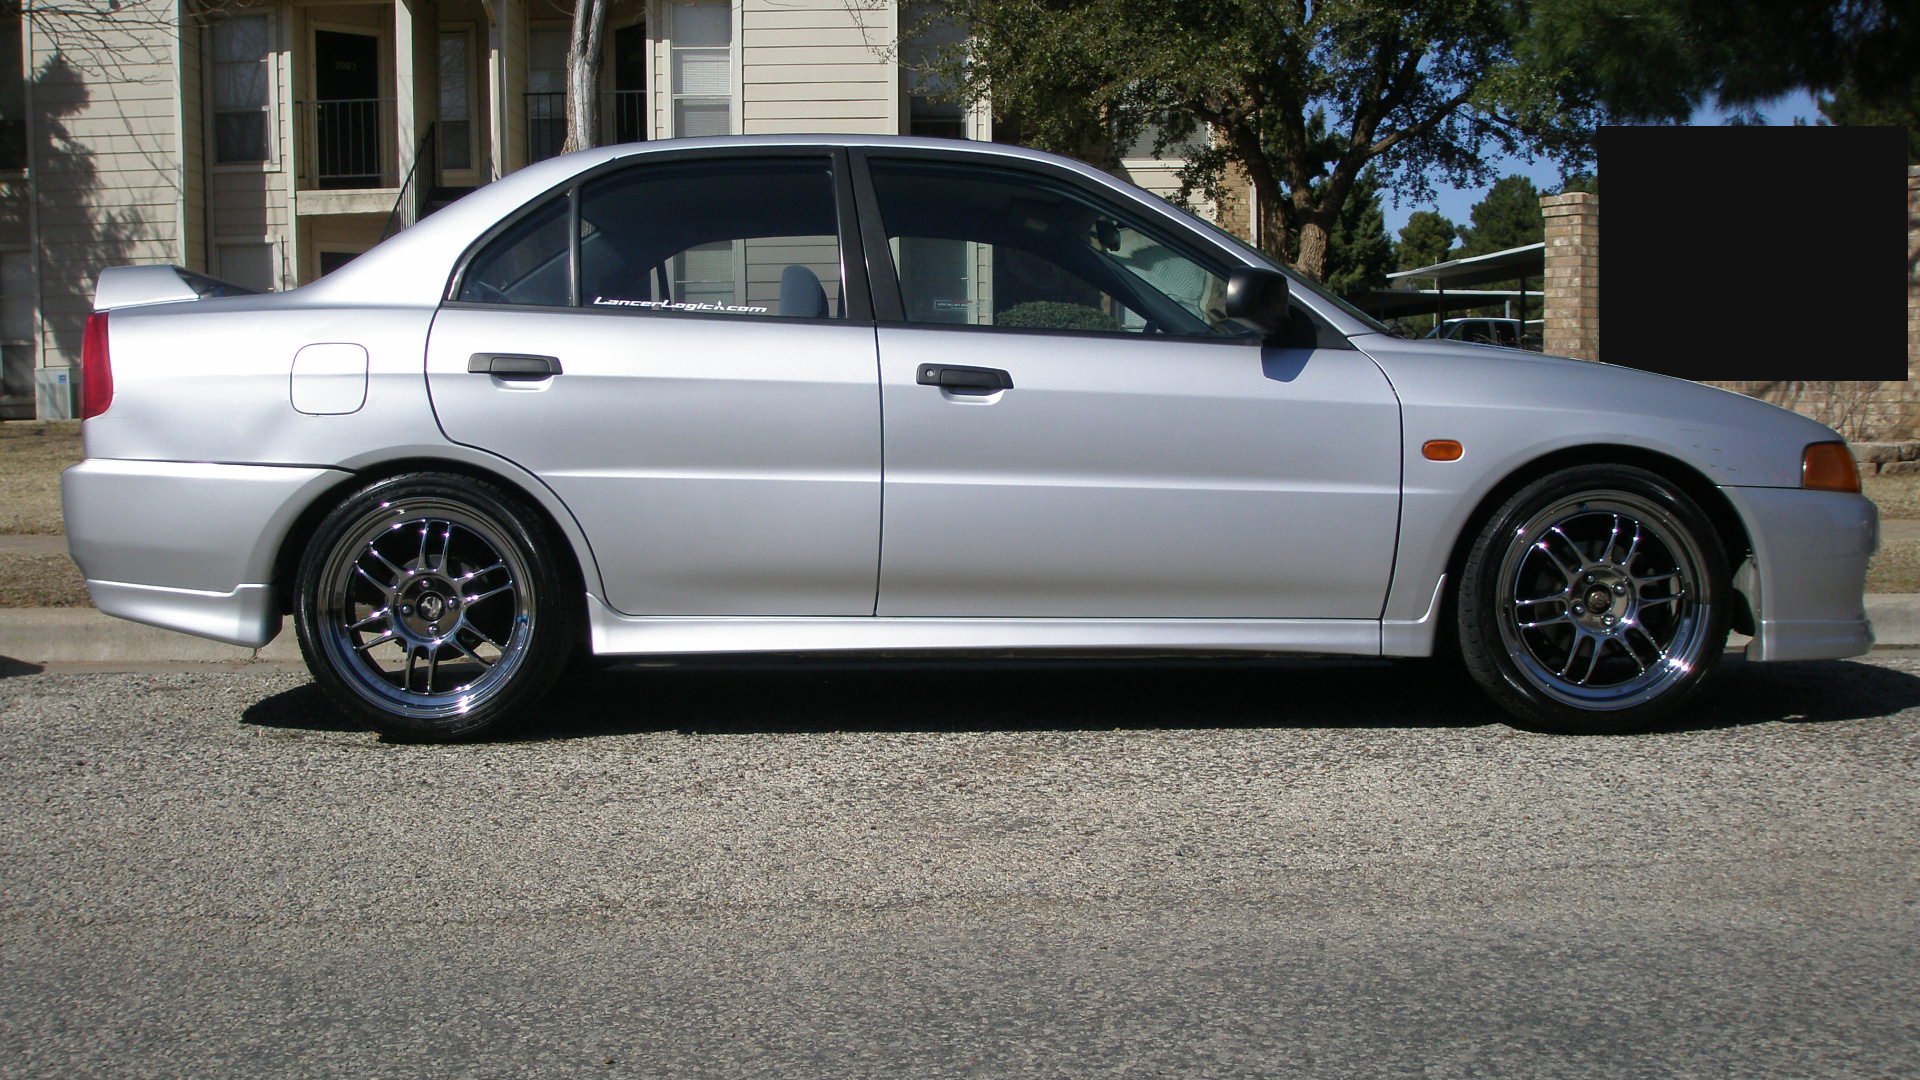 Mitsubishi Mirage 2001 Black Images & Pictures - Becuo